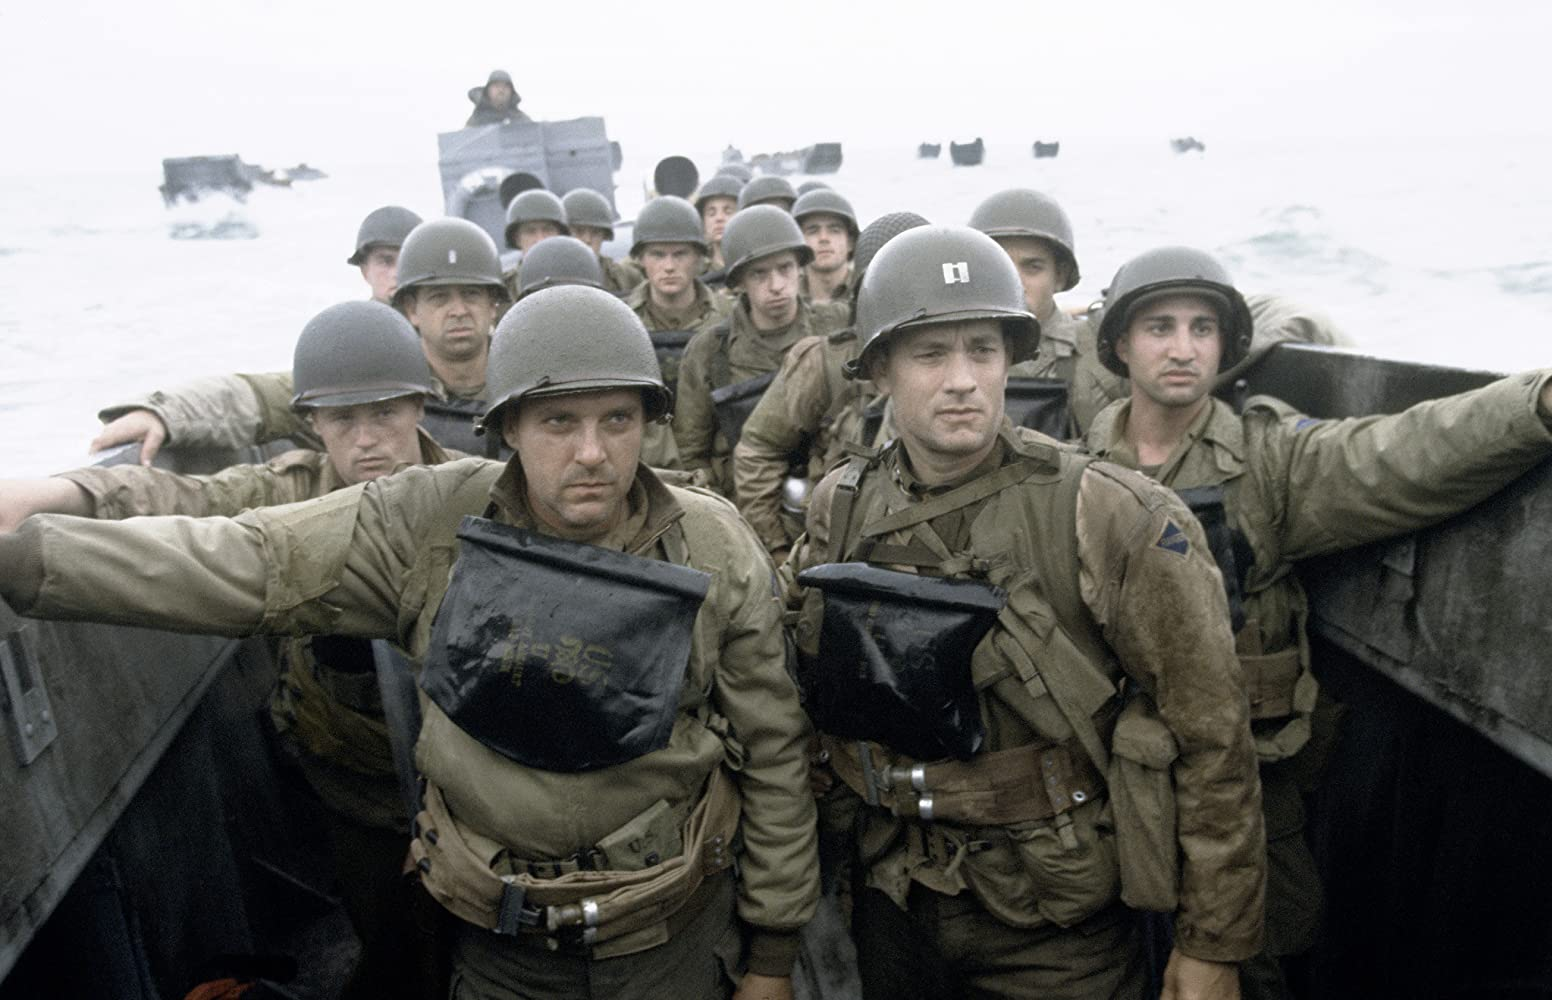 Tom Hanks, Tom Sizemore, Paschal Friel, Rolf Saxon, and Adam Shaw in Saving Private Ryan (1998)